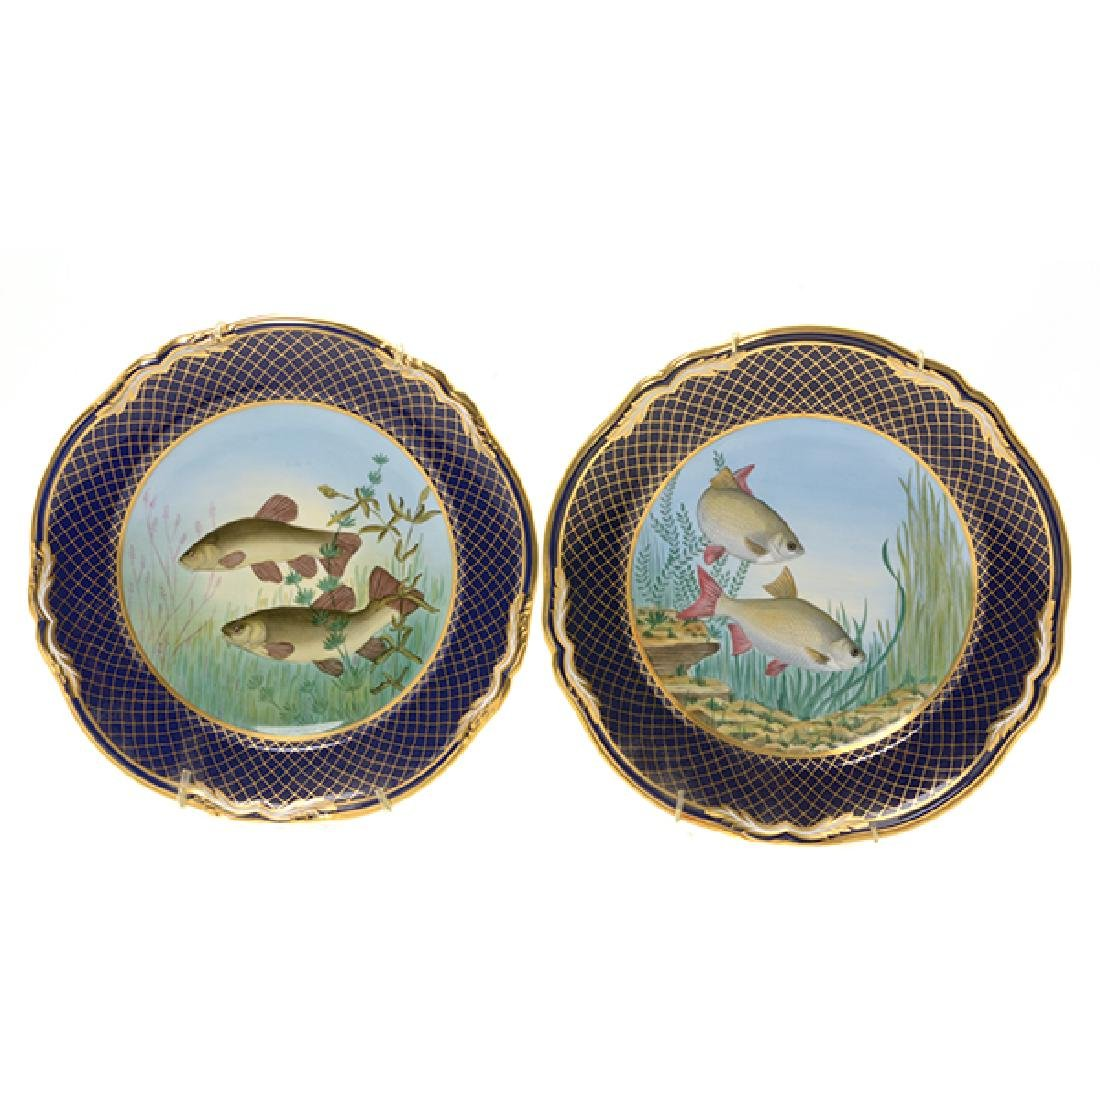 Twelve Spode Plates of Ducks, Fish, and Wildflowers